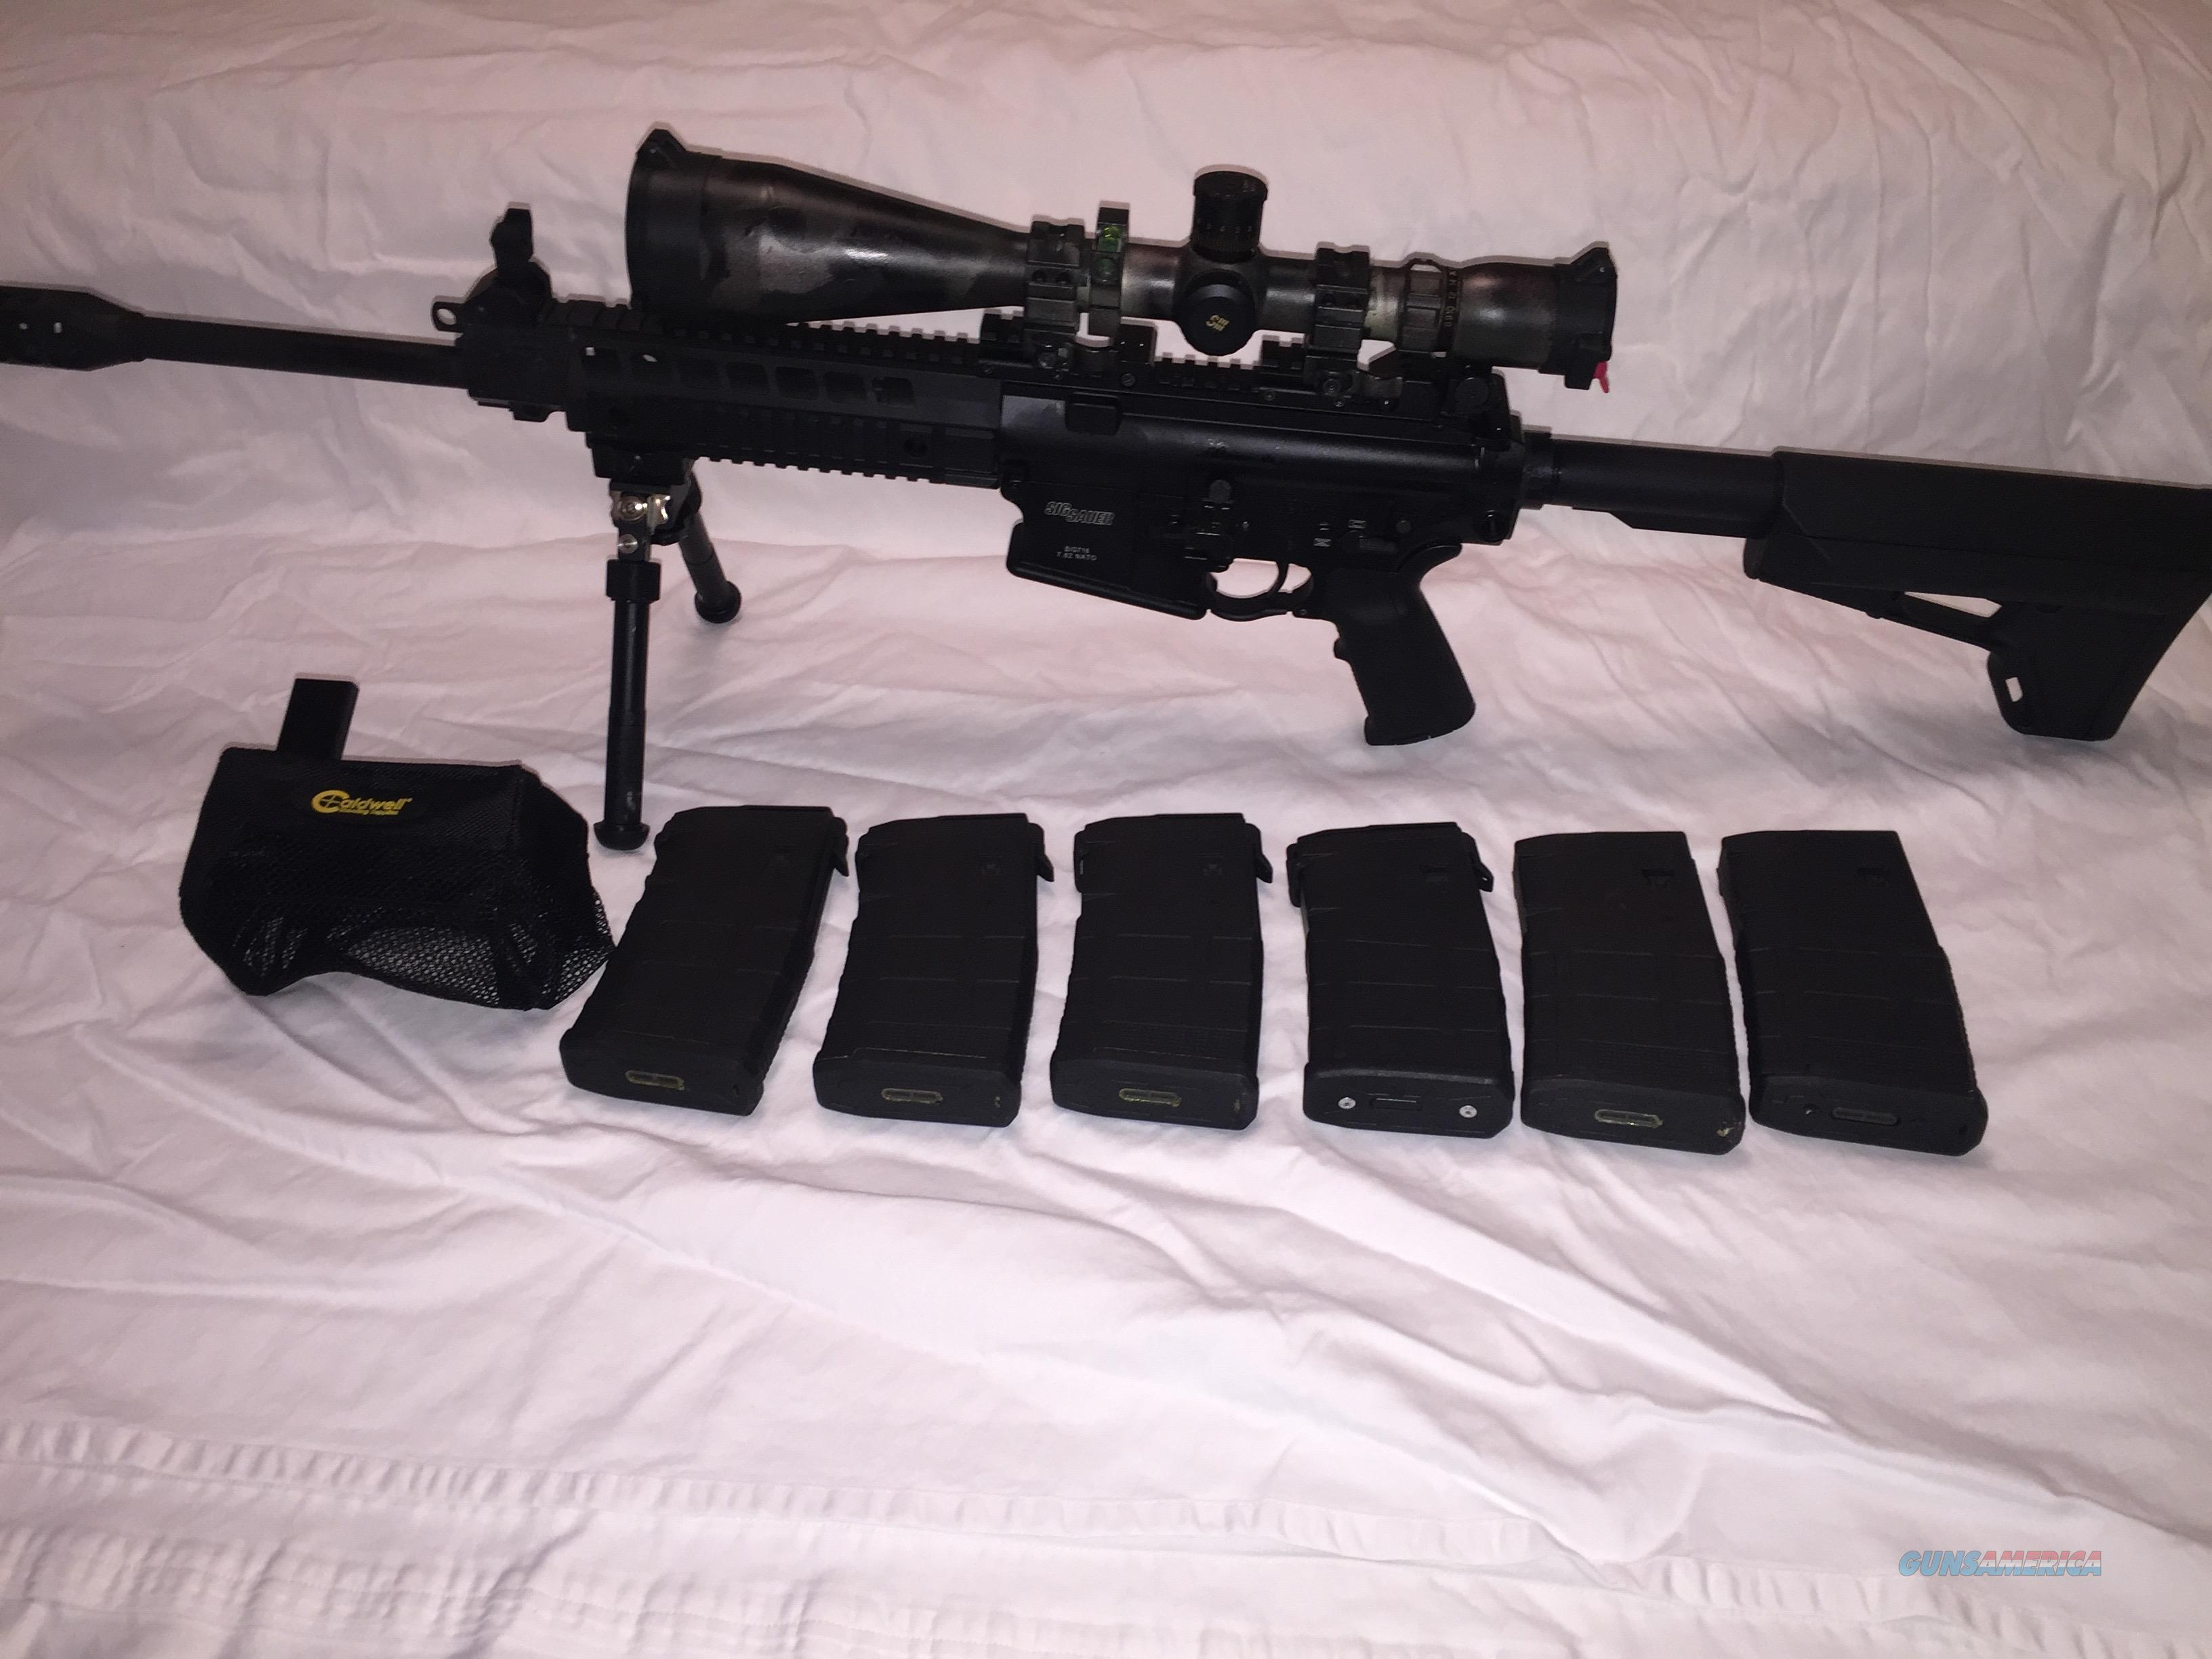 Sig Sauer 716 with Hariis Bi-Pod and Sightron III Scope, Hyperfire 24C  Guns > Rifles > Sig - Sauer/Sigarms Rifles